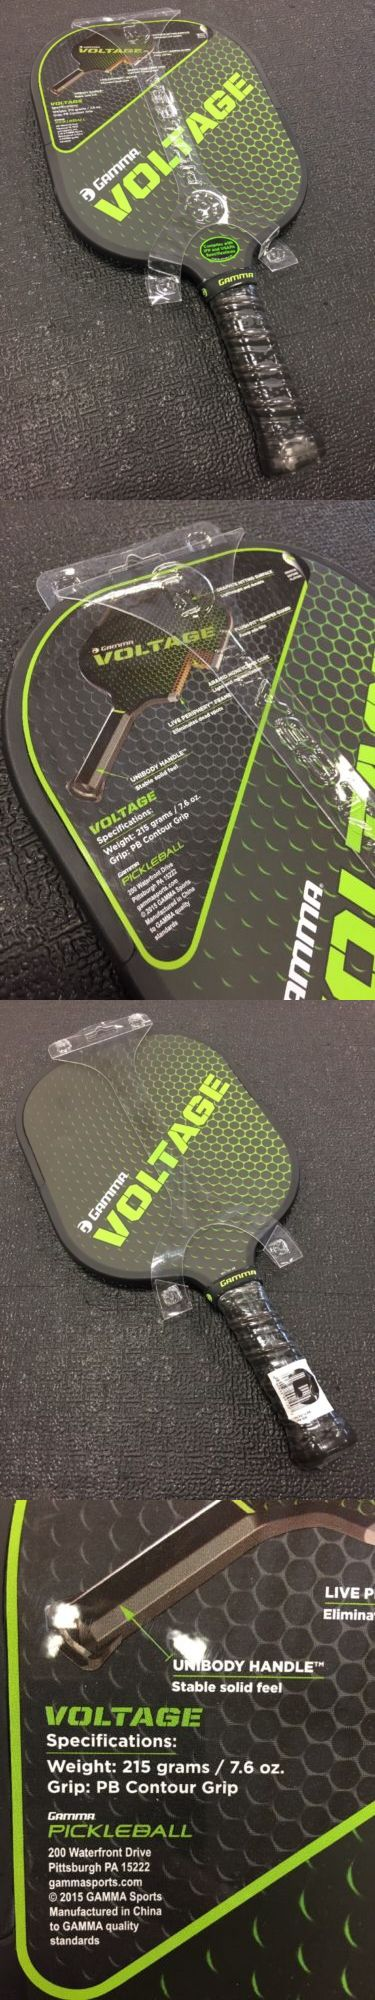 Other Tennis and Racquet Sports 159135: New Gamma Voltage Pickleball Paddle -> BUY IT NOW ONLY: $99 on eBay!